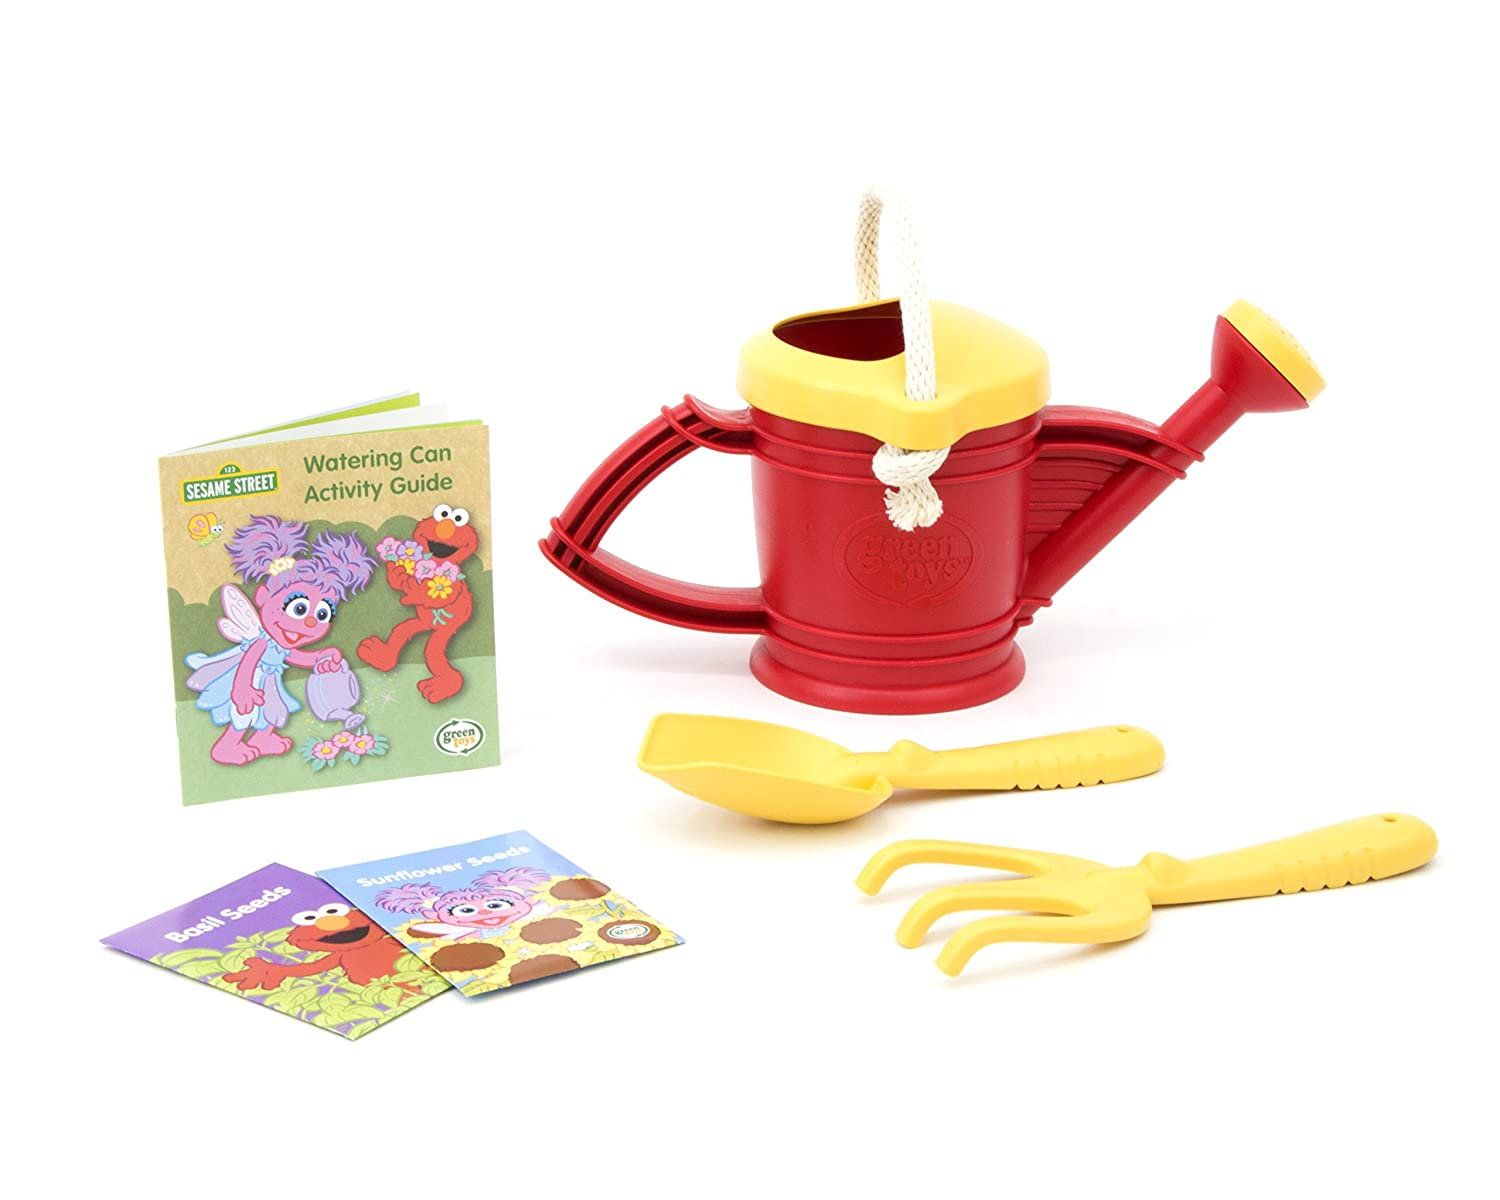 Green Toys Sesame Street Watering Can - Elmo Outdoor Activity Set SSWTCR-1316